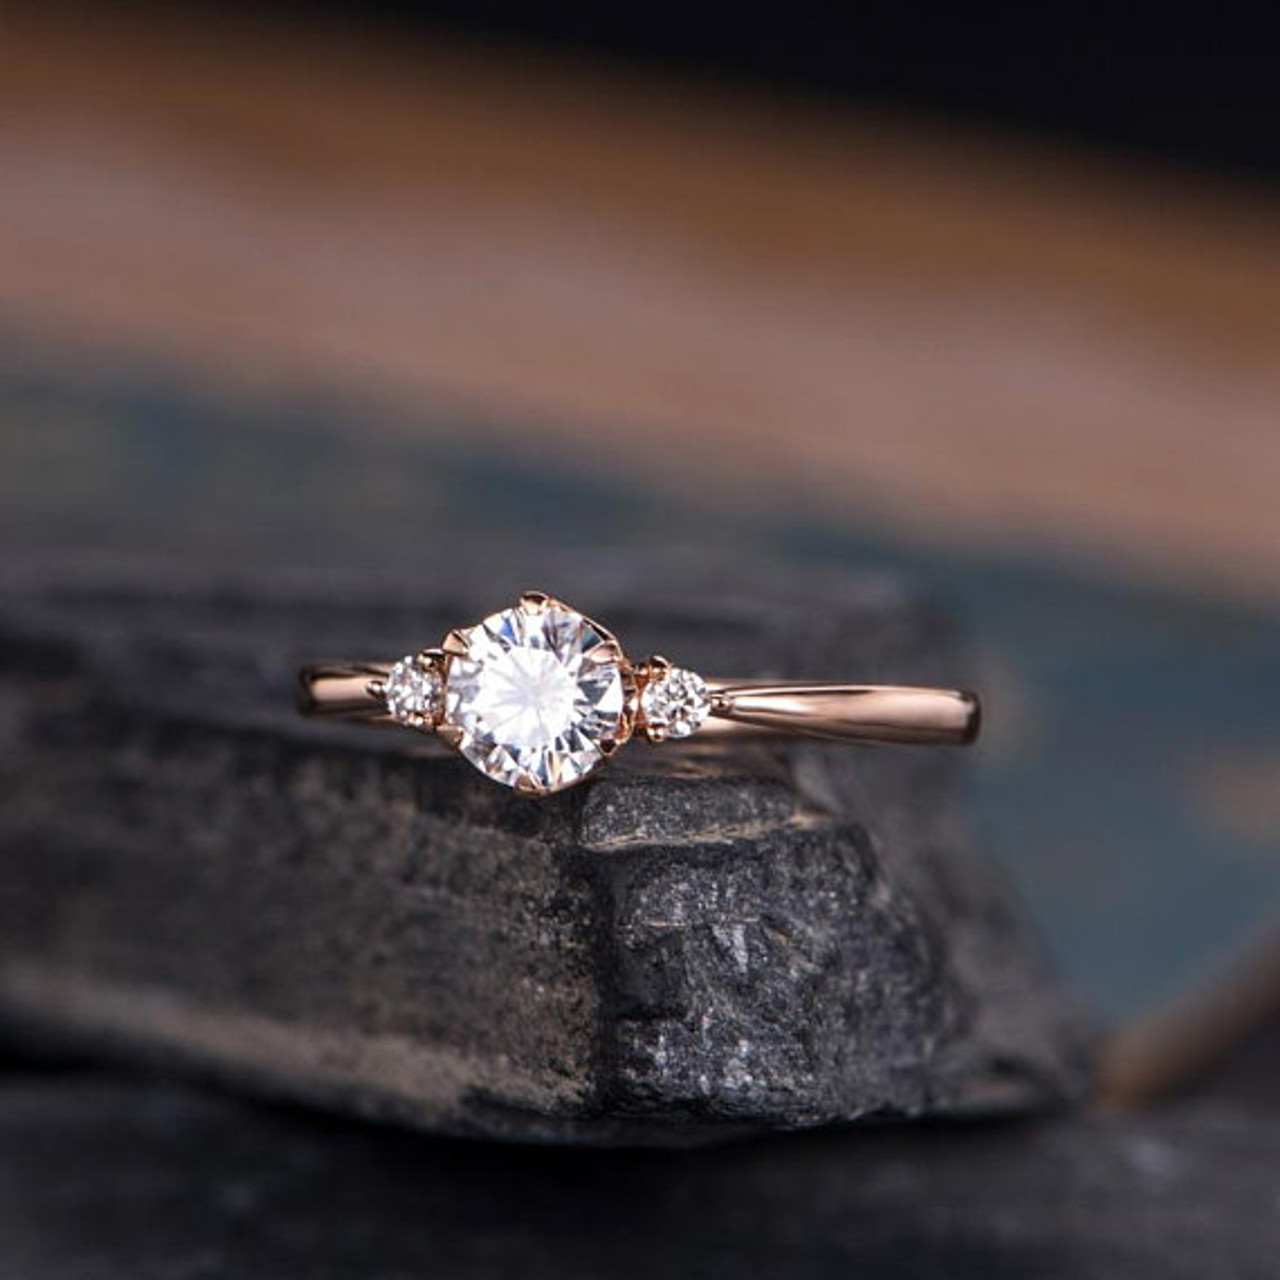 Rose Gold Moissanite Engagement Ring Three Stone Solitaire 3 Stone Eternity Bridal Wedding Women Anniversary Gift For Her Mothers Day Gift Bbbgem